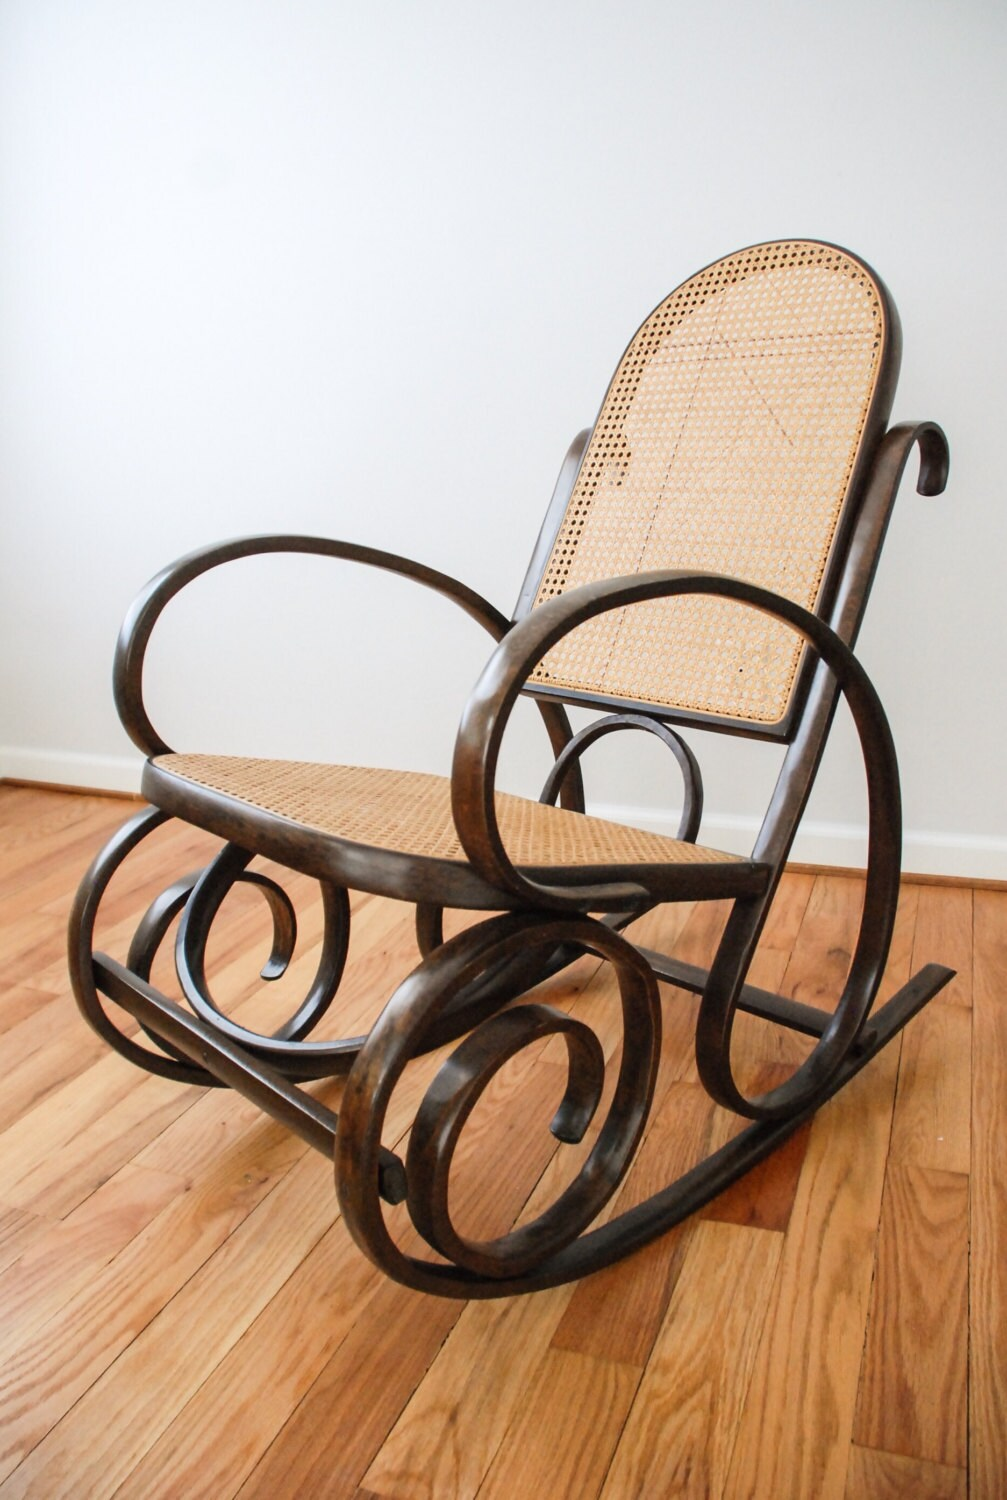 Bentwood rocking chair repair - Request A Custom Order And Have Something Made Just For You